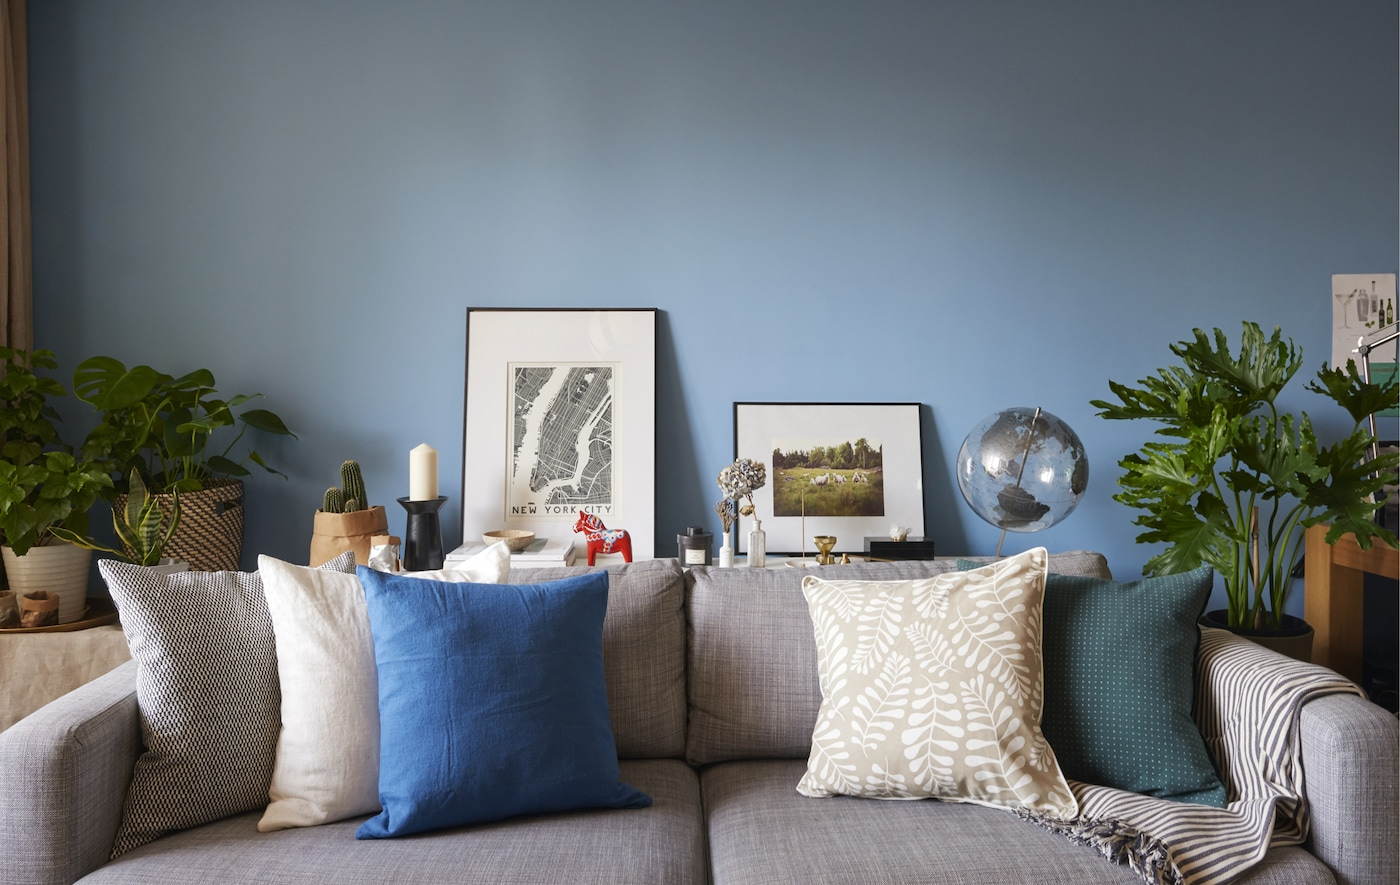 A grey sofa with cushions against a blue wall.